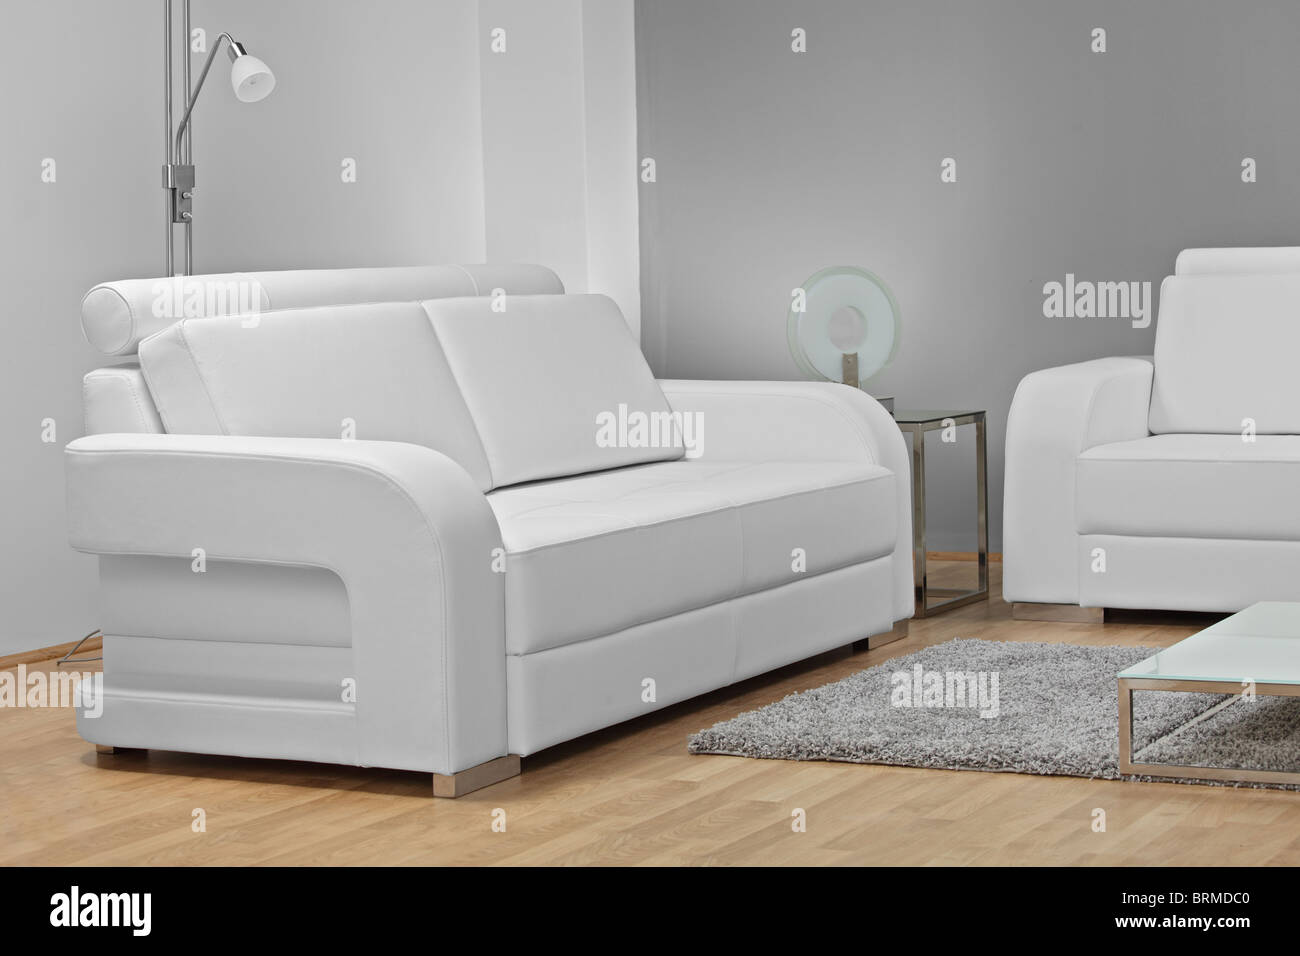 A studio shot of white furniture - Stock Image